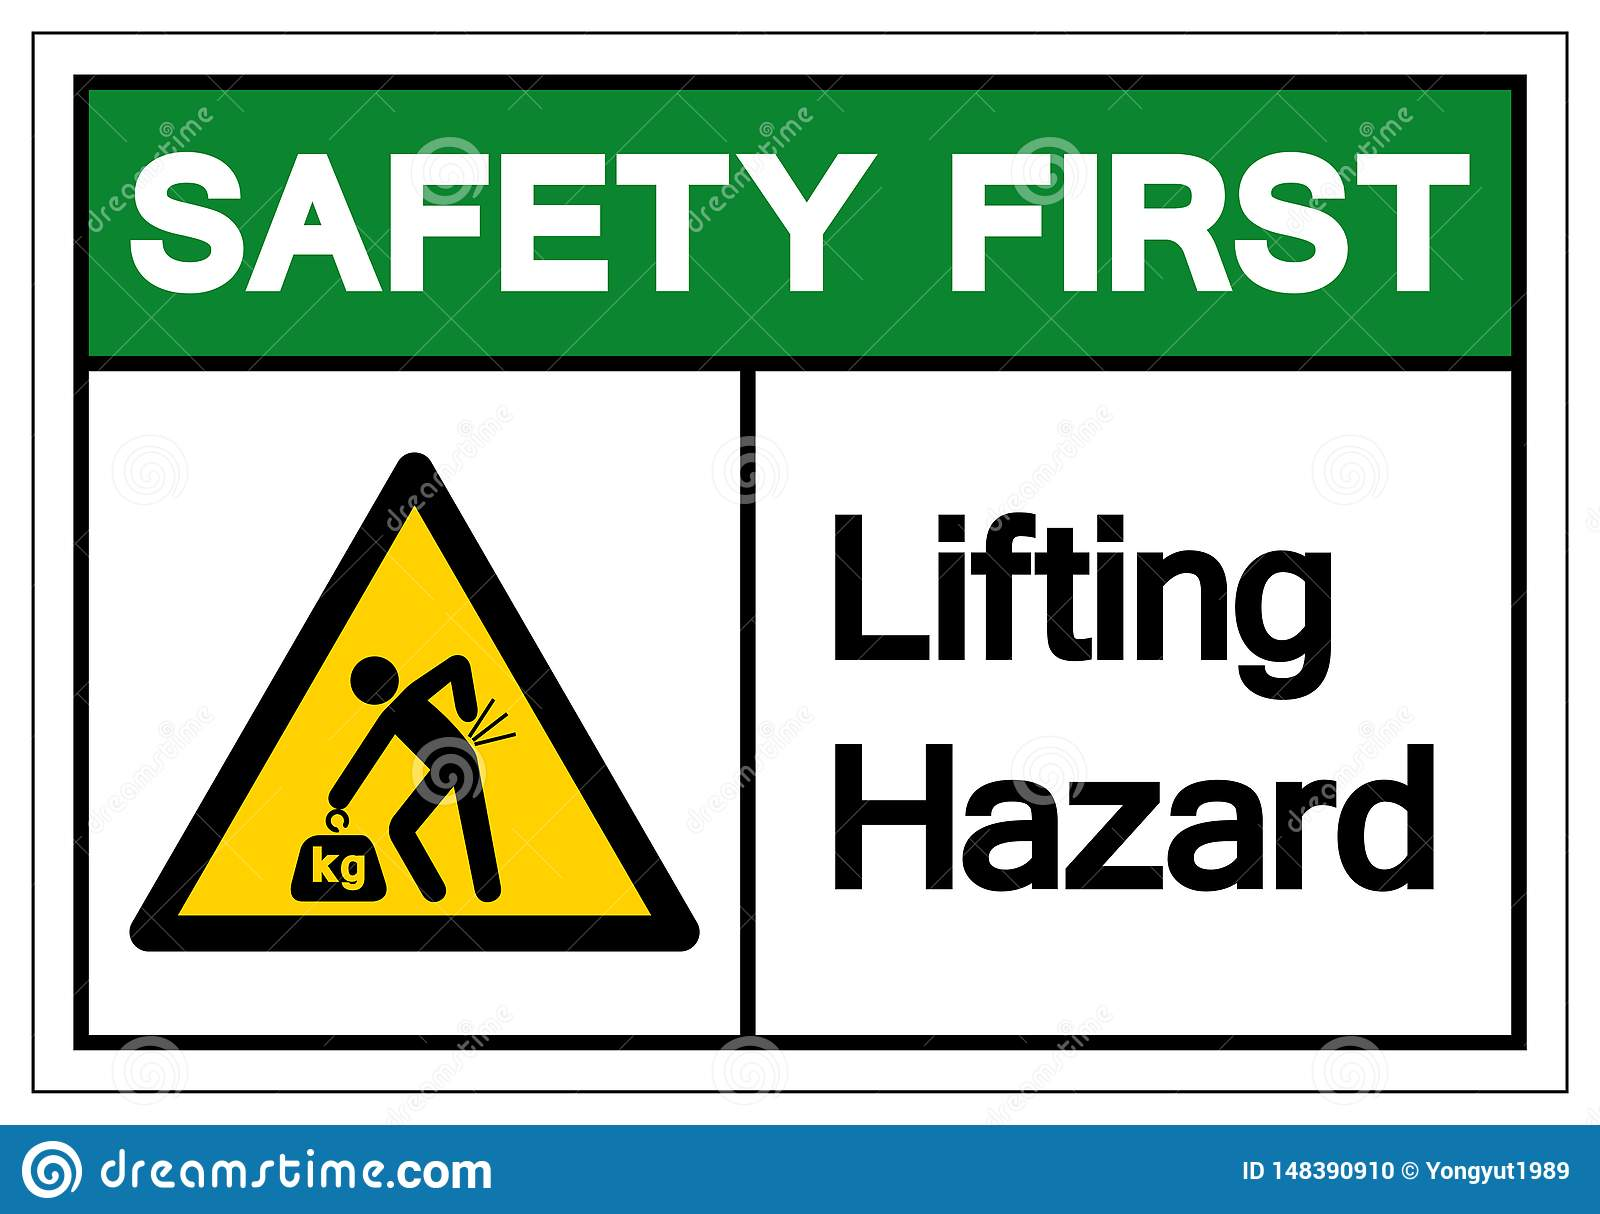 Safety First Lifting Hazard Symbol Sign Vector